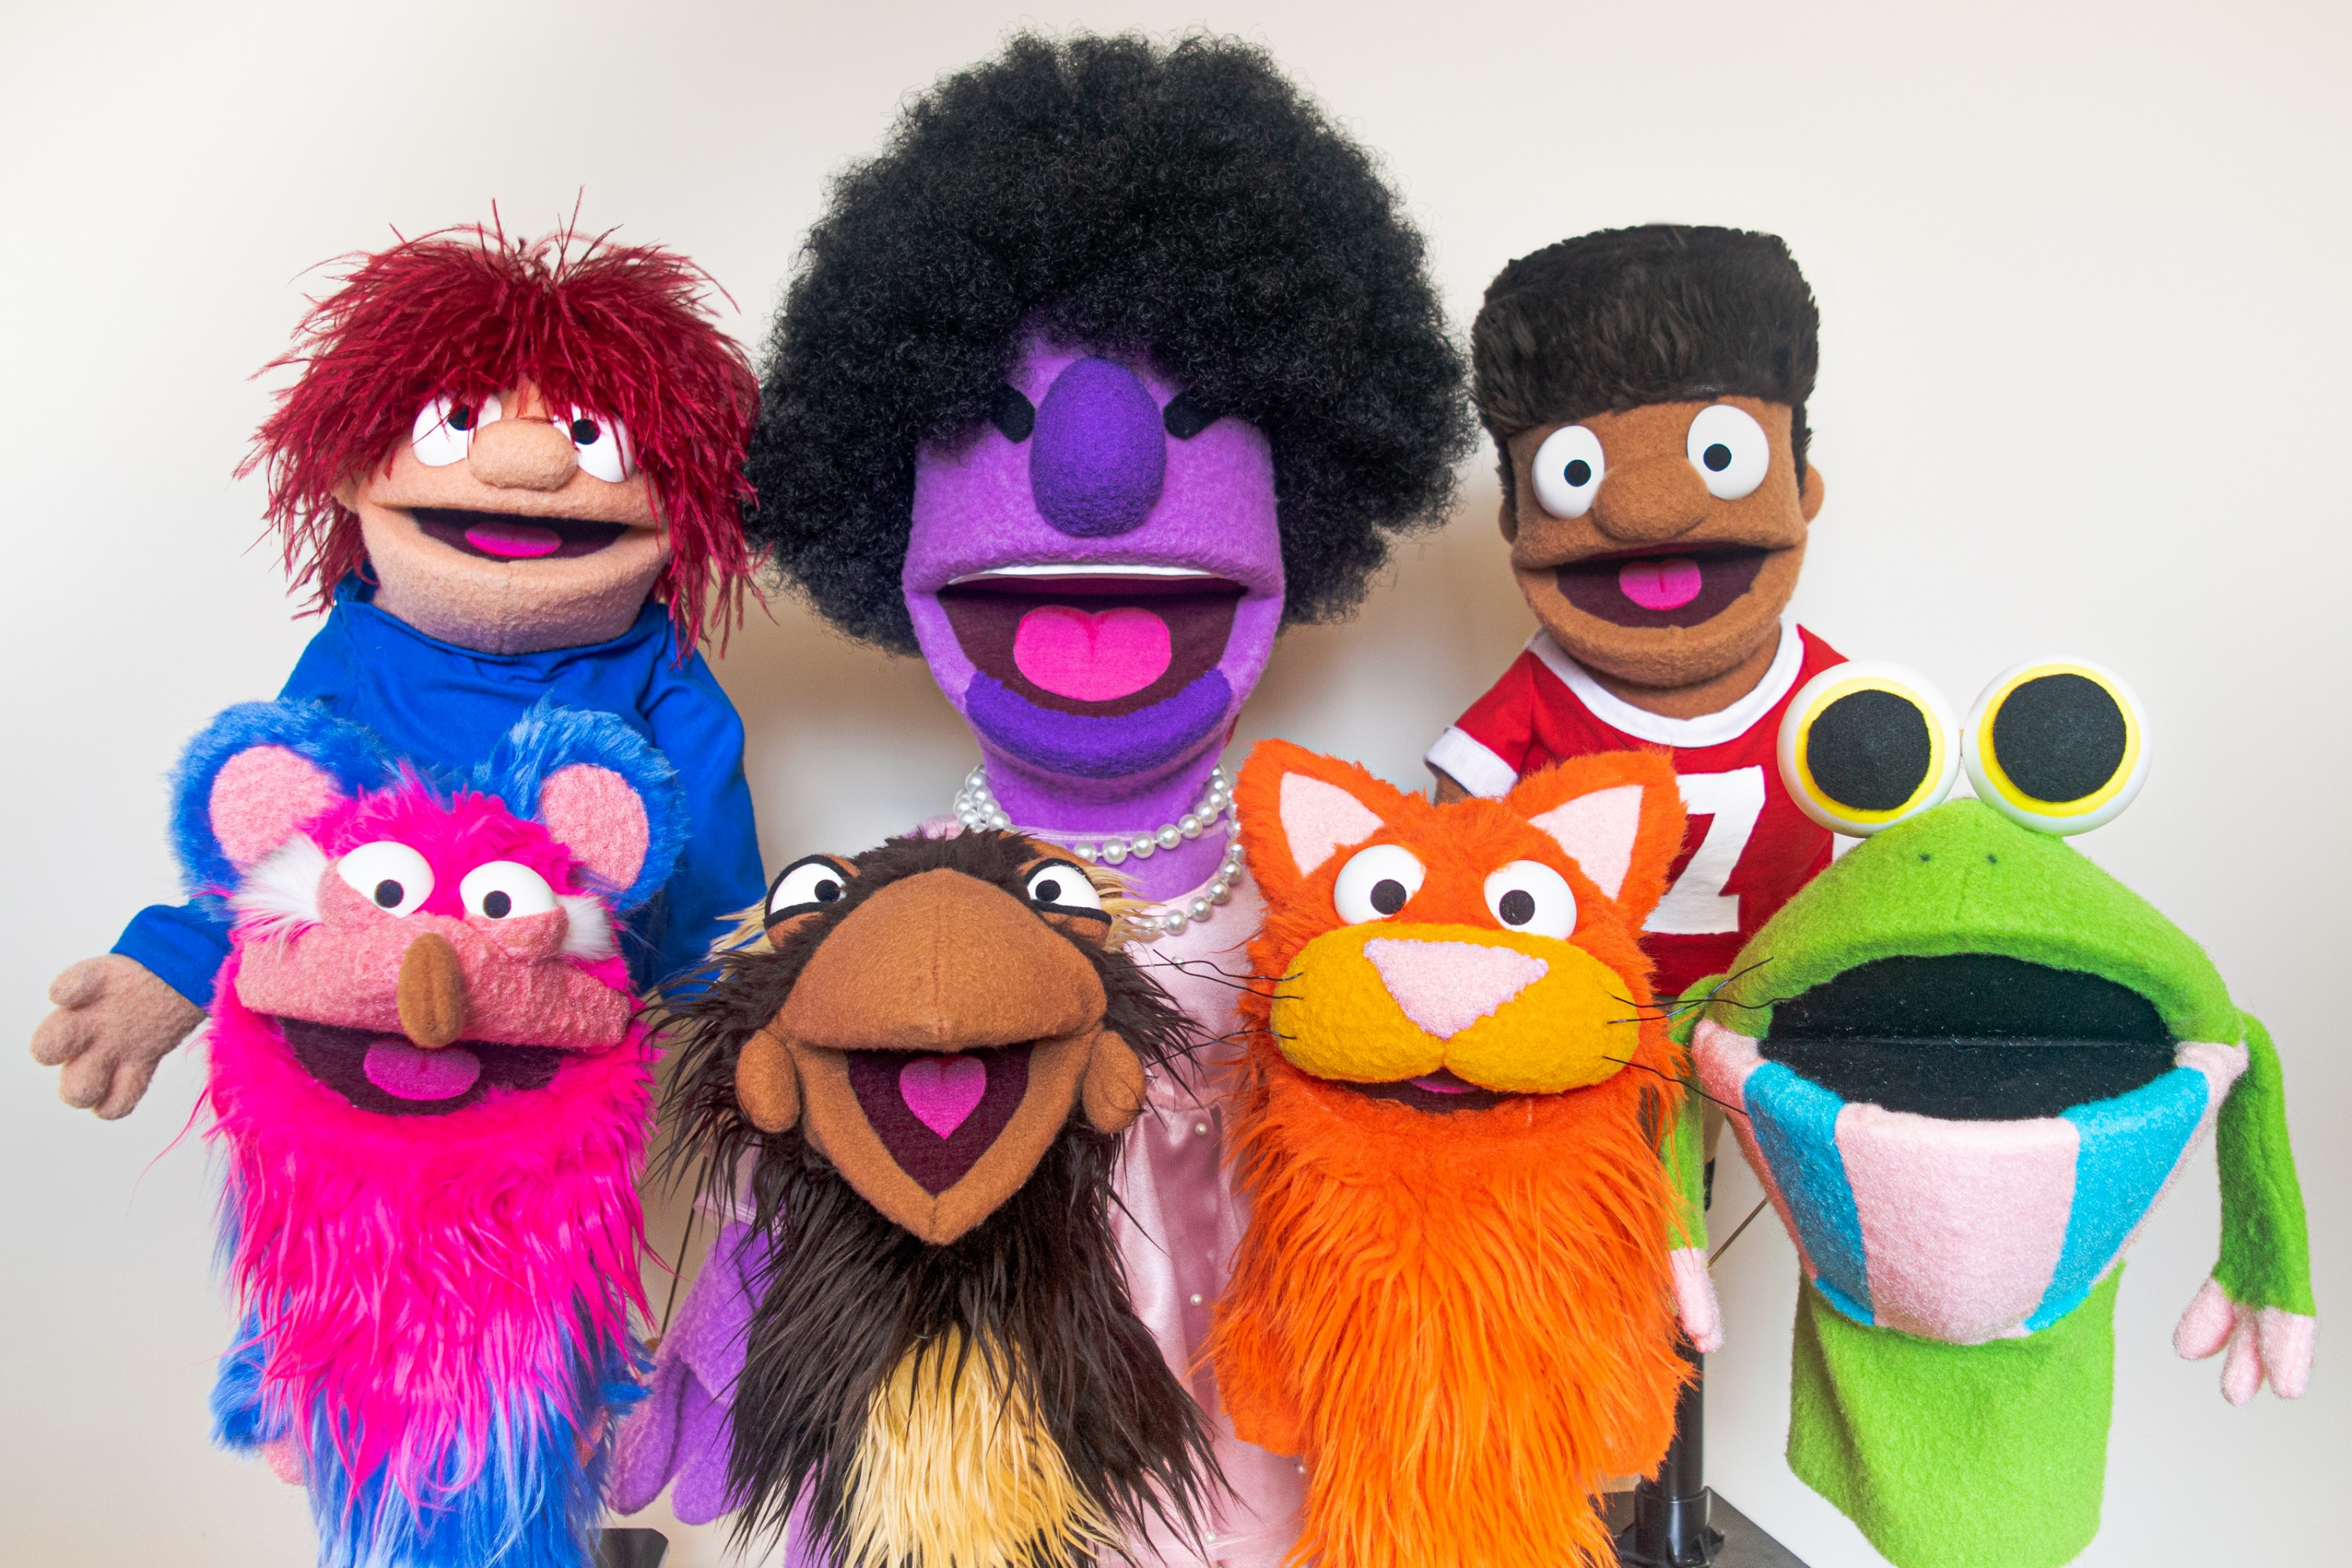 a group of seven original multi-colored puppet characters. two young boys, a purple woman, a cat, an opposum, a frog, and a chicken.